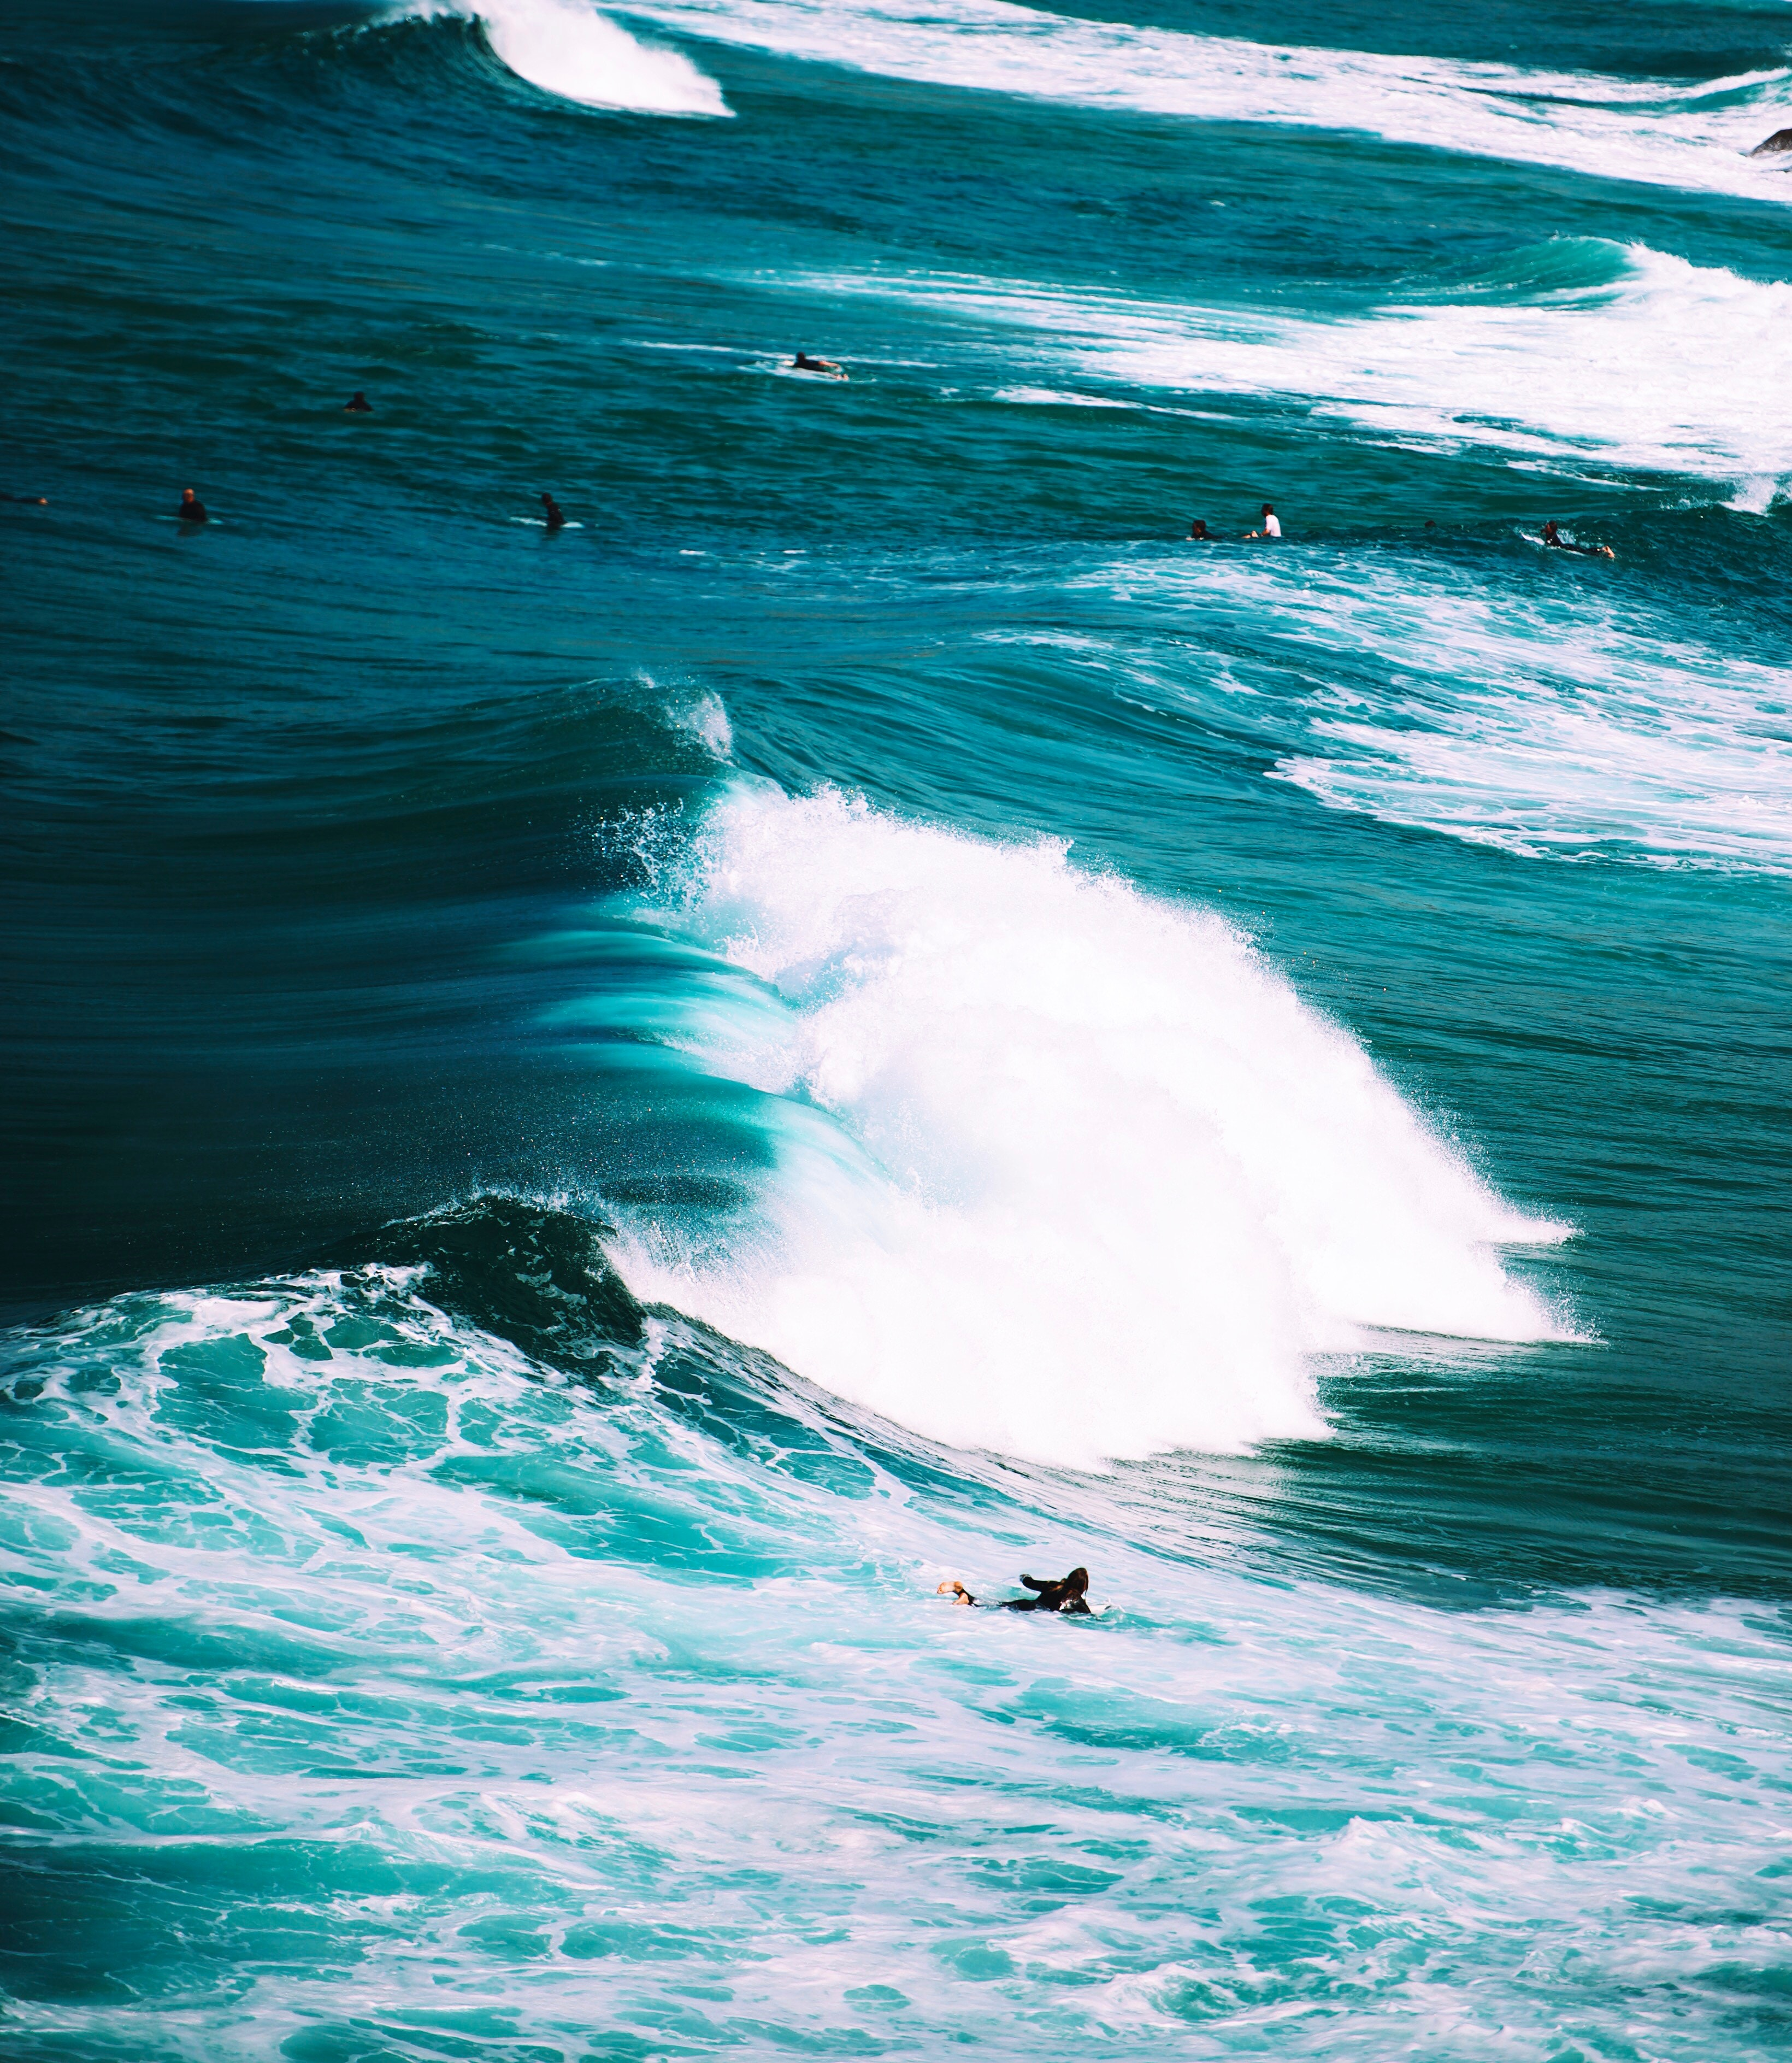 65666 download wallpaper Nature, Ocean, Serfing, Surf, Foam, Waves screensavers and pictures for free